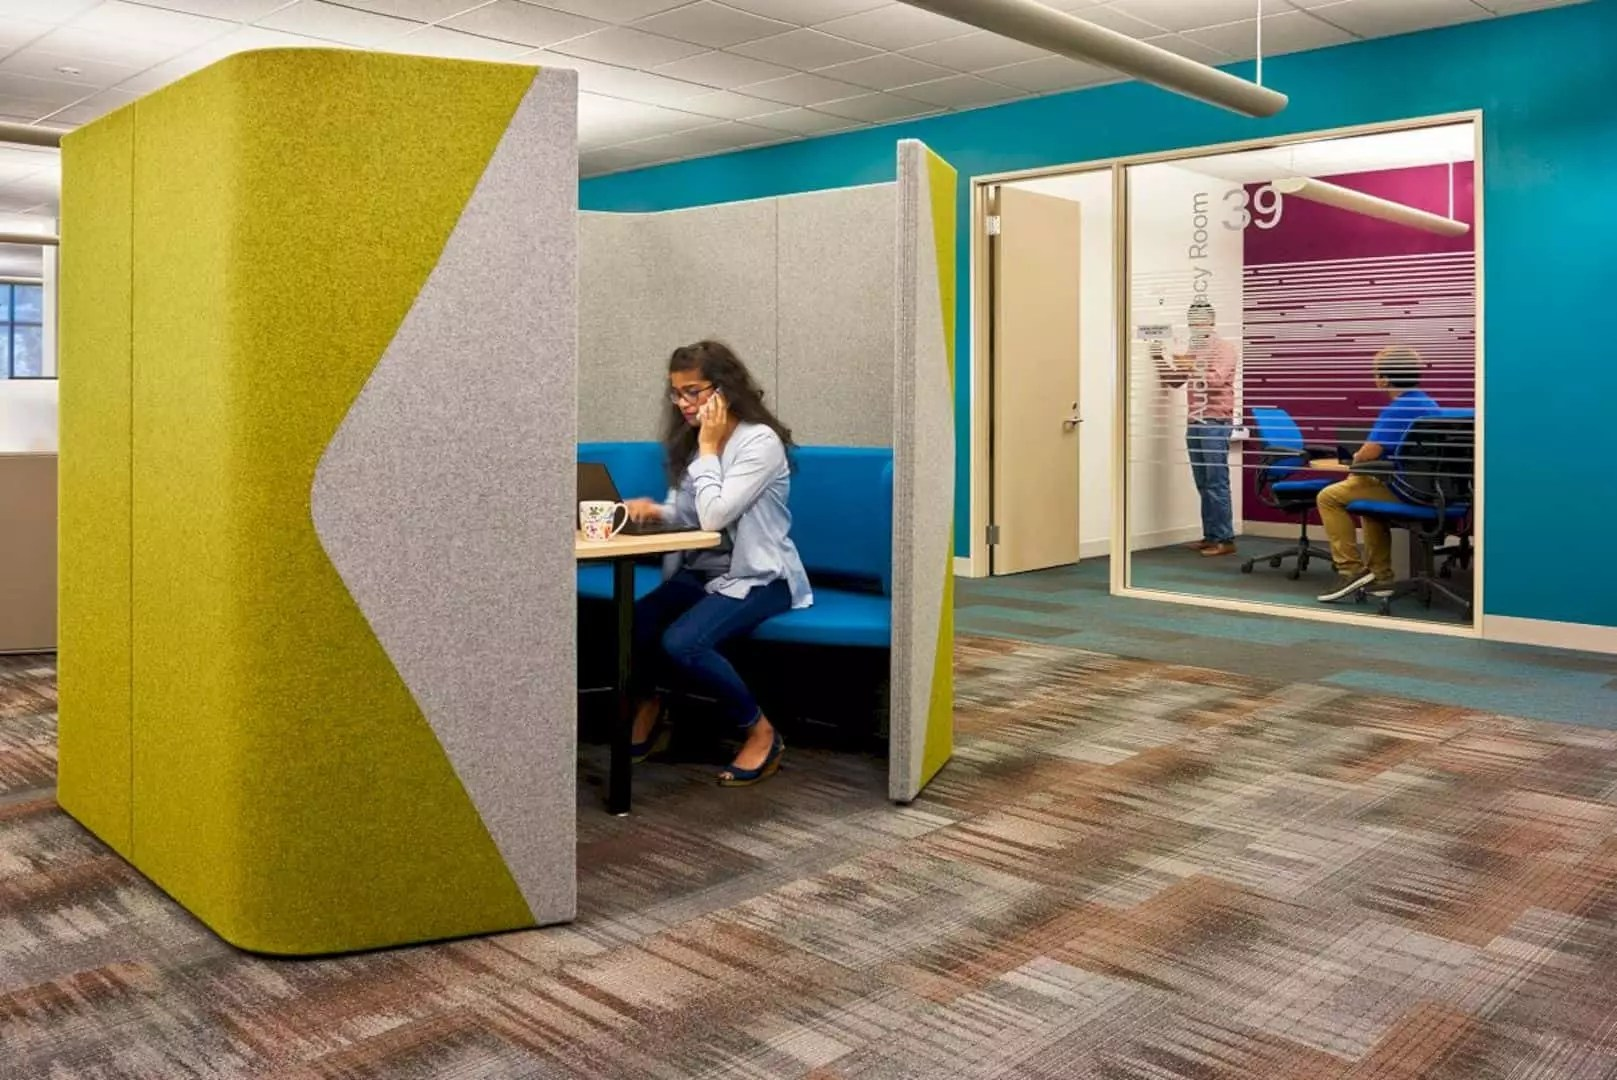 Cisco Systems Inc. Building 5: A Sustainable Office Design for A Global Networking Firm